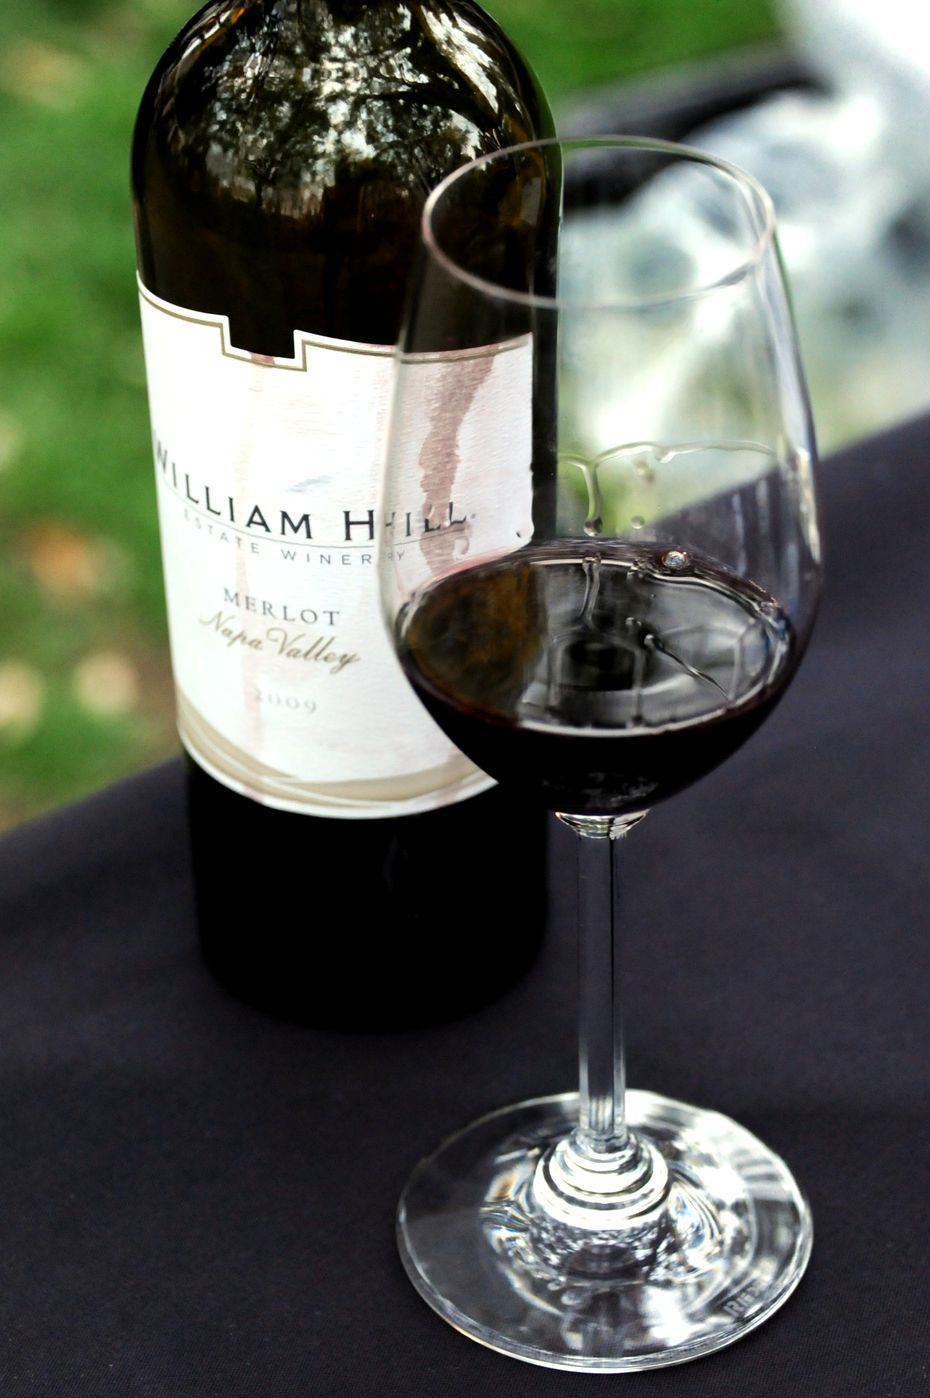 William Hill Napa Valley Merlot is a popular choice at the Savor Dallas Arts District Wine Stroll in downtown Dallas, TX on March 21, 2014.